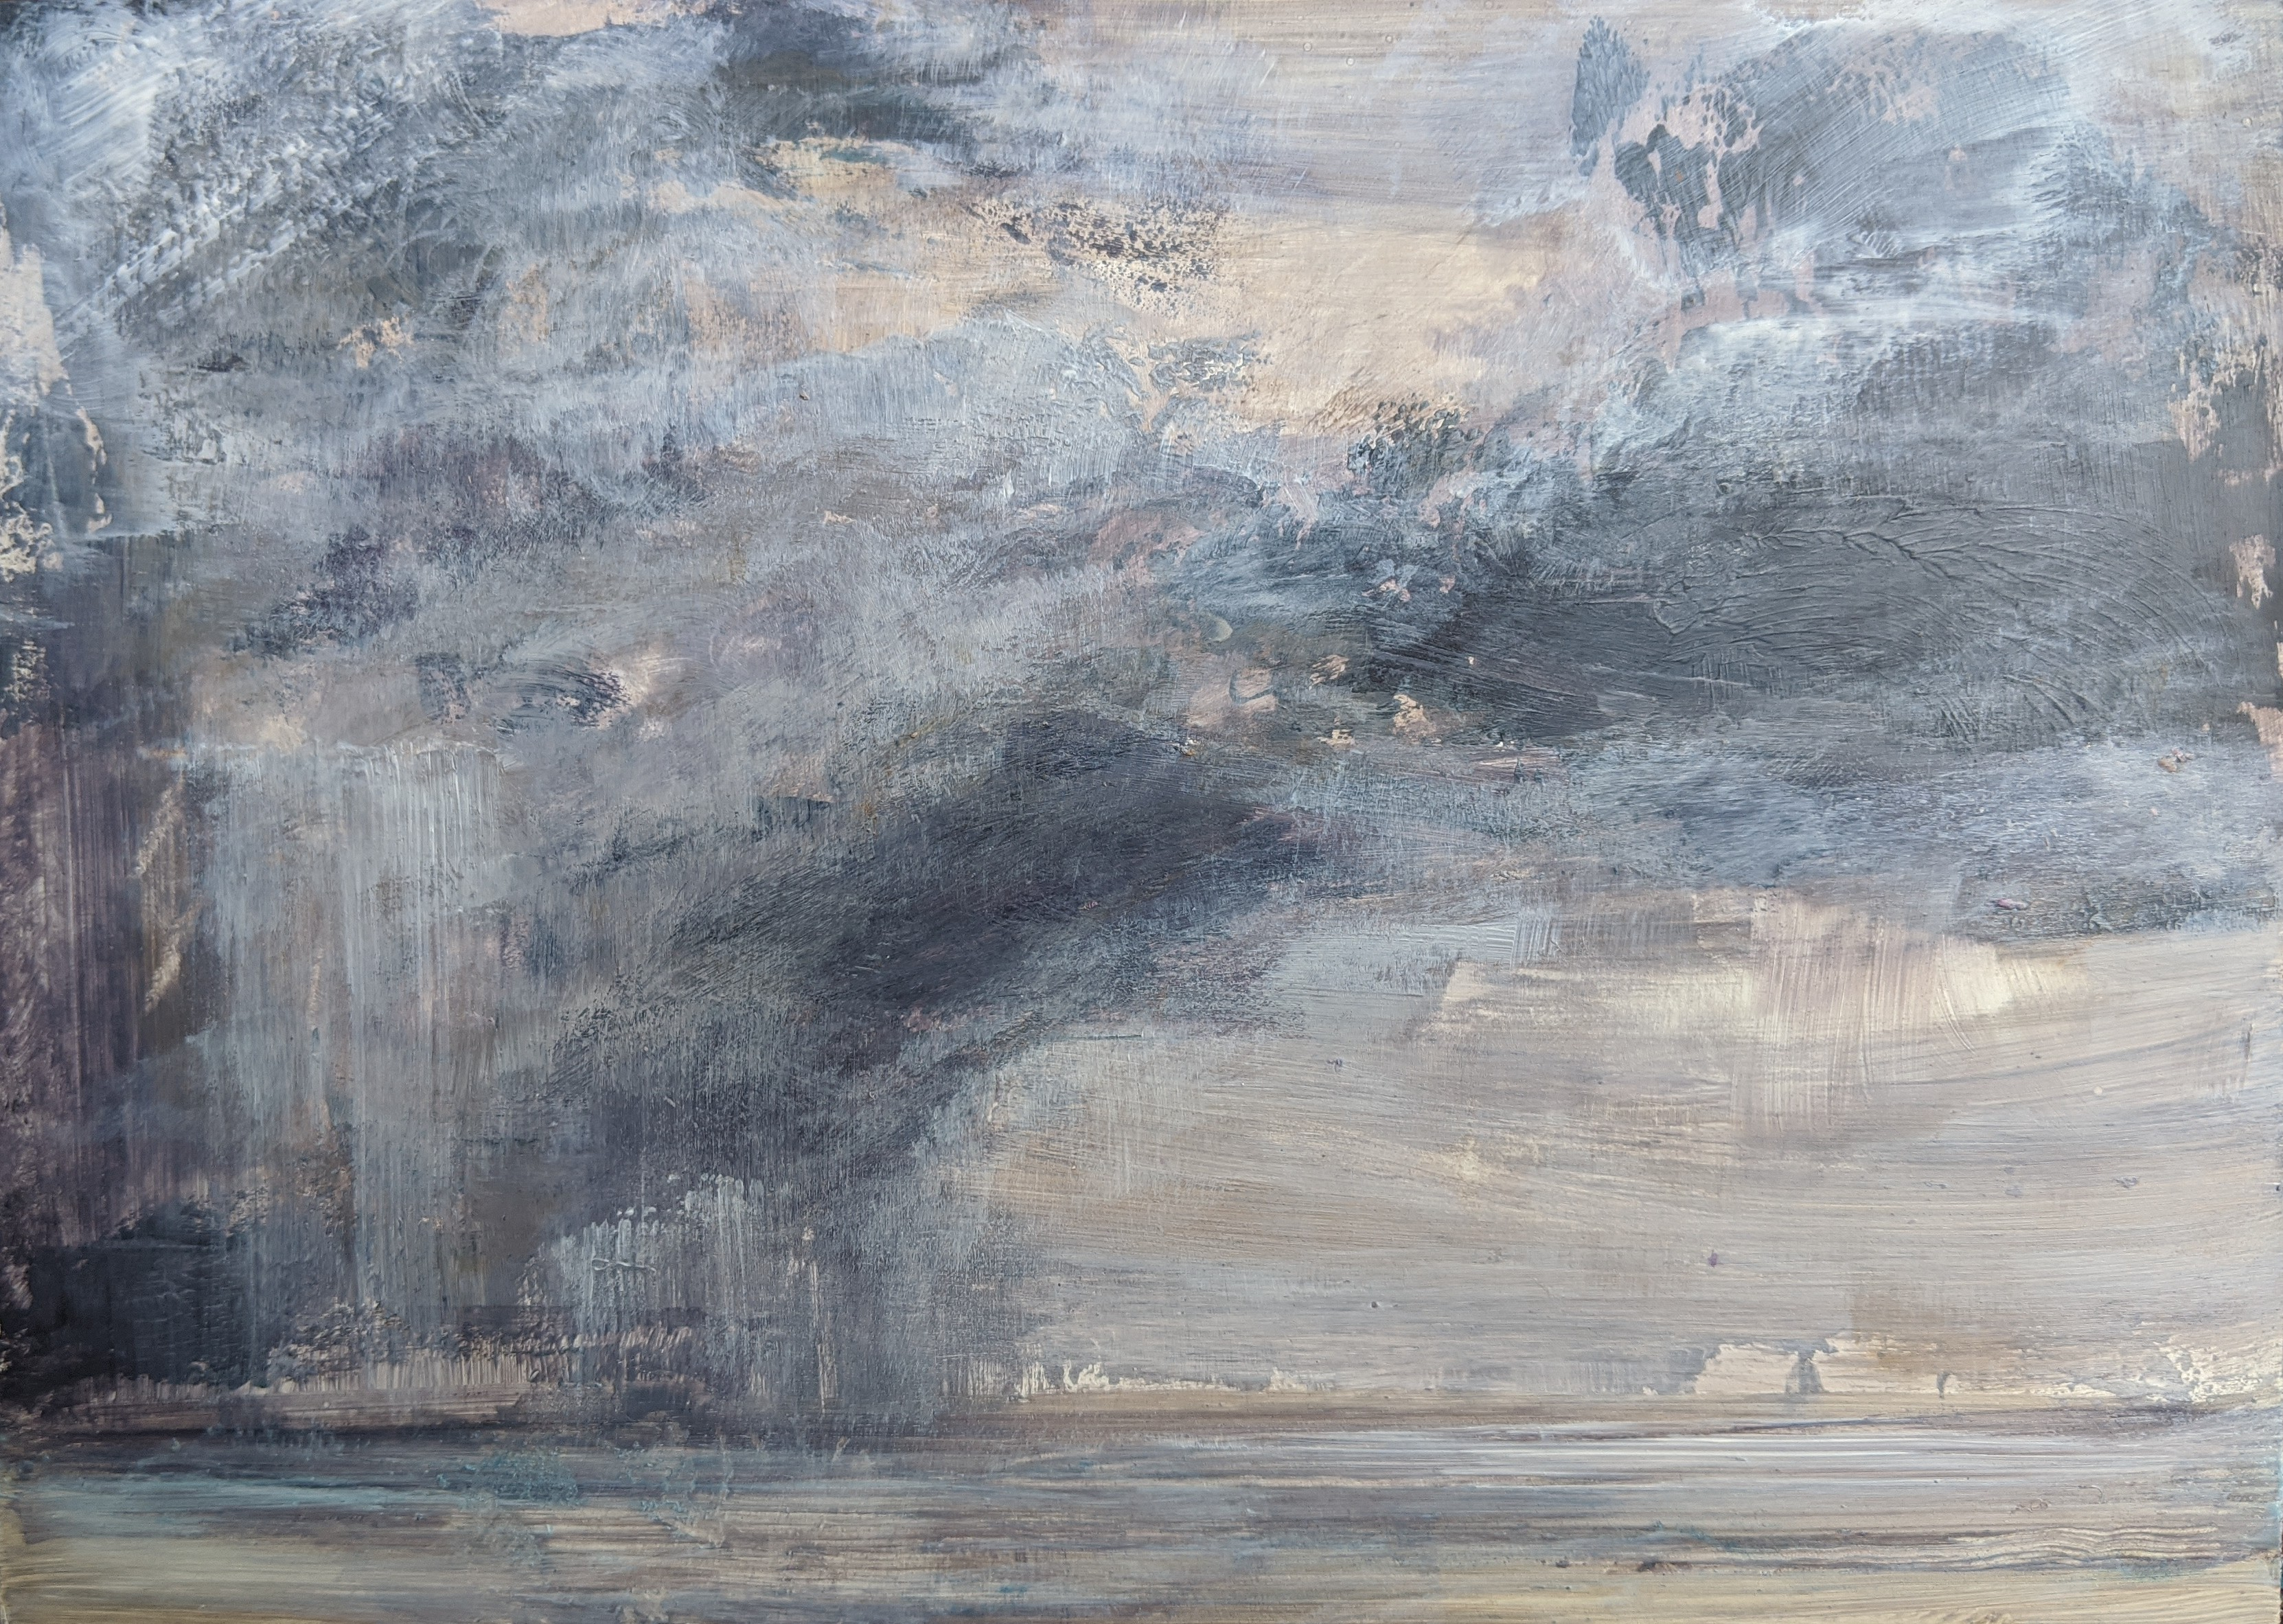 Rain Study - Strangford Lough